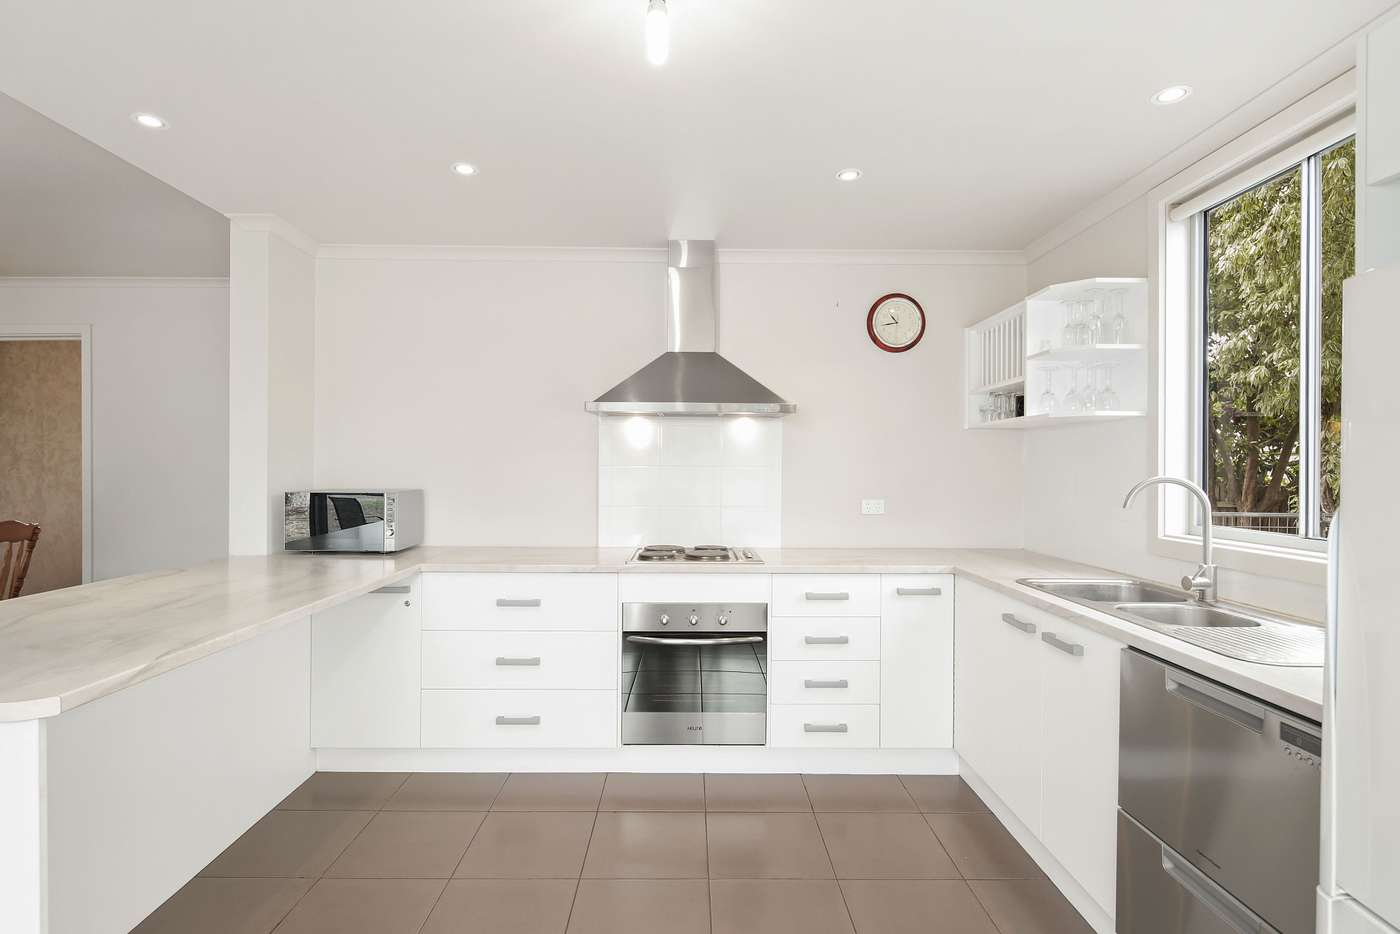 Main view of Homely house listing, 30 Koala Street, Cowes VIC 3922